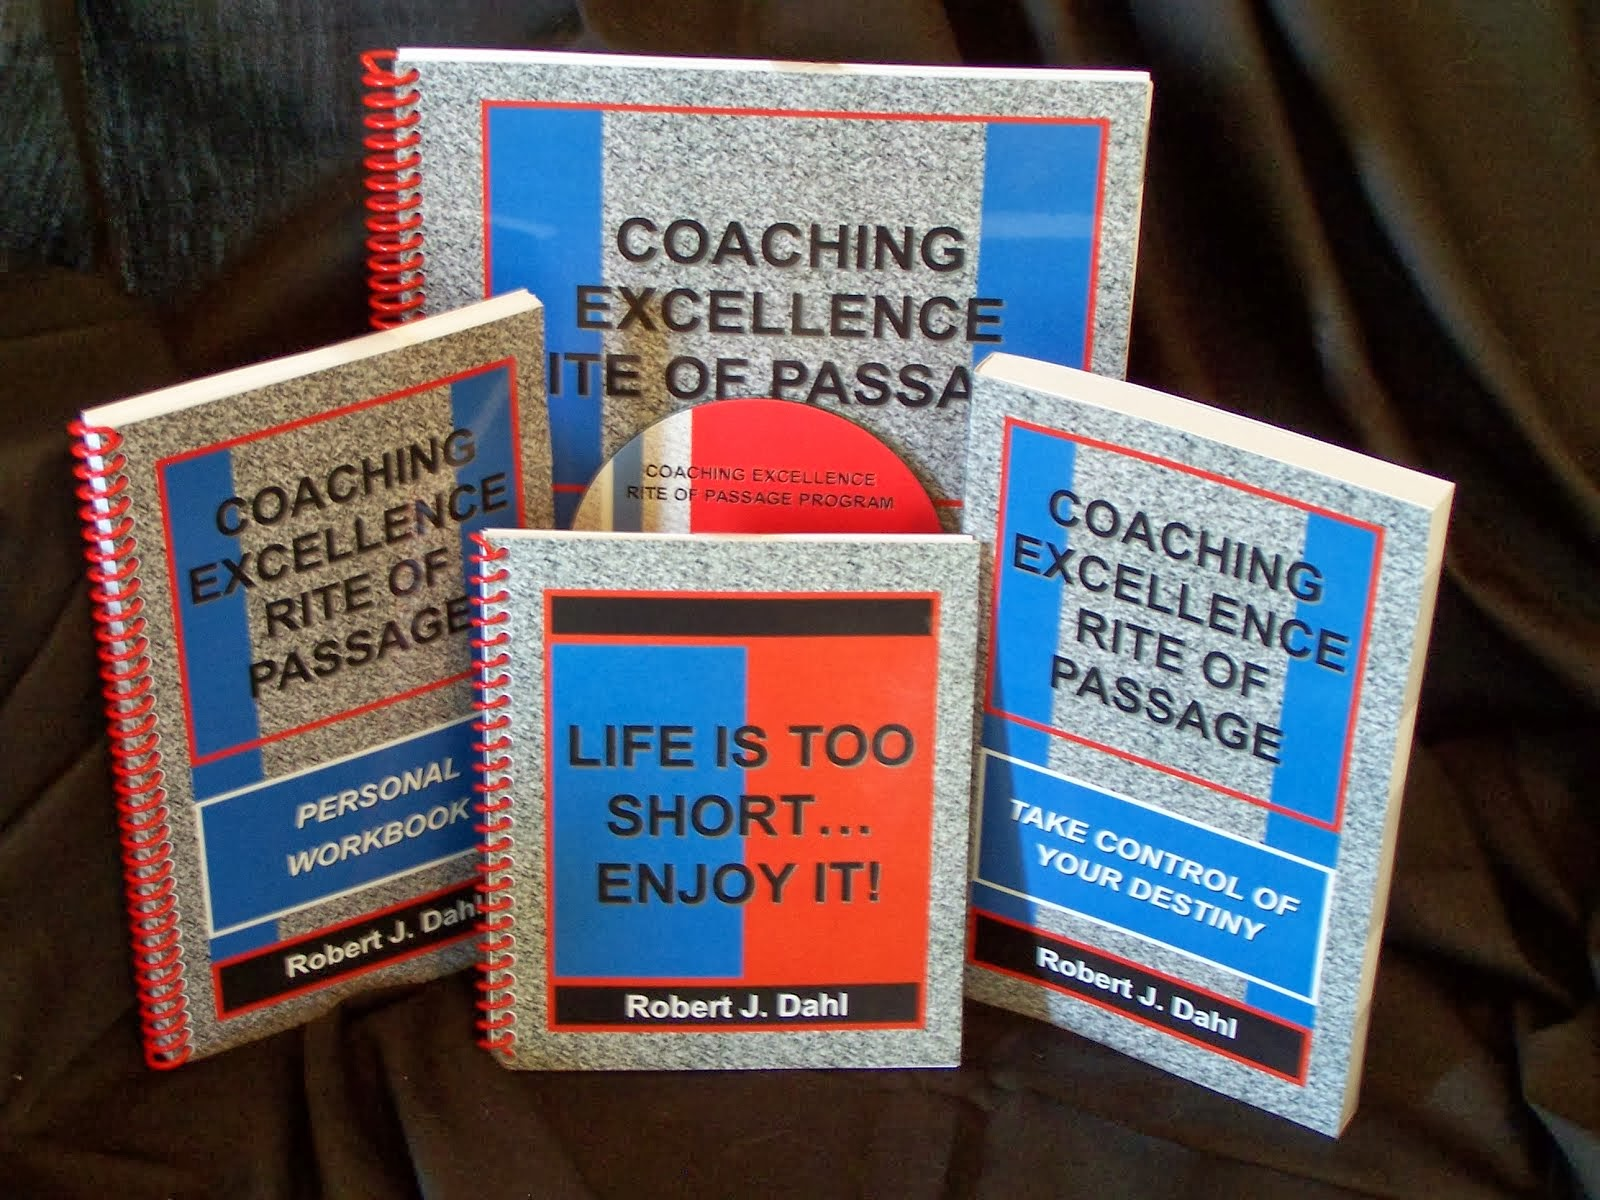 COACHING EXCELLENCE RITE OF PASSAGE LEADERSHIP TRAINING PROGRAM